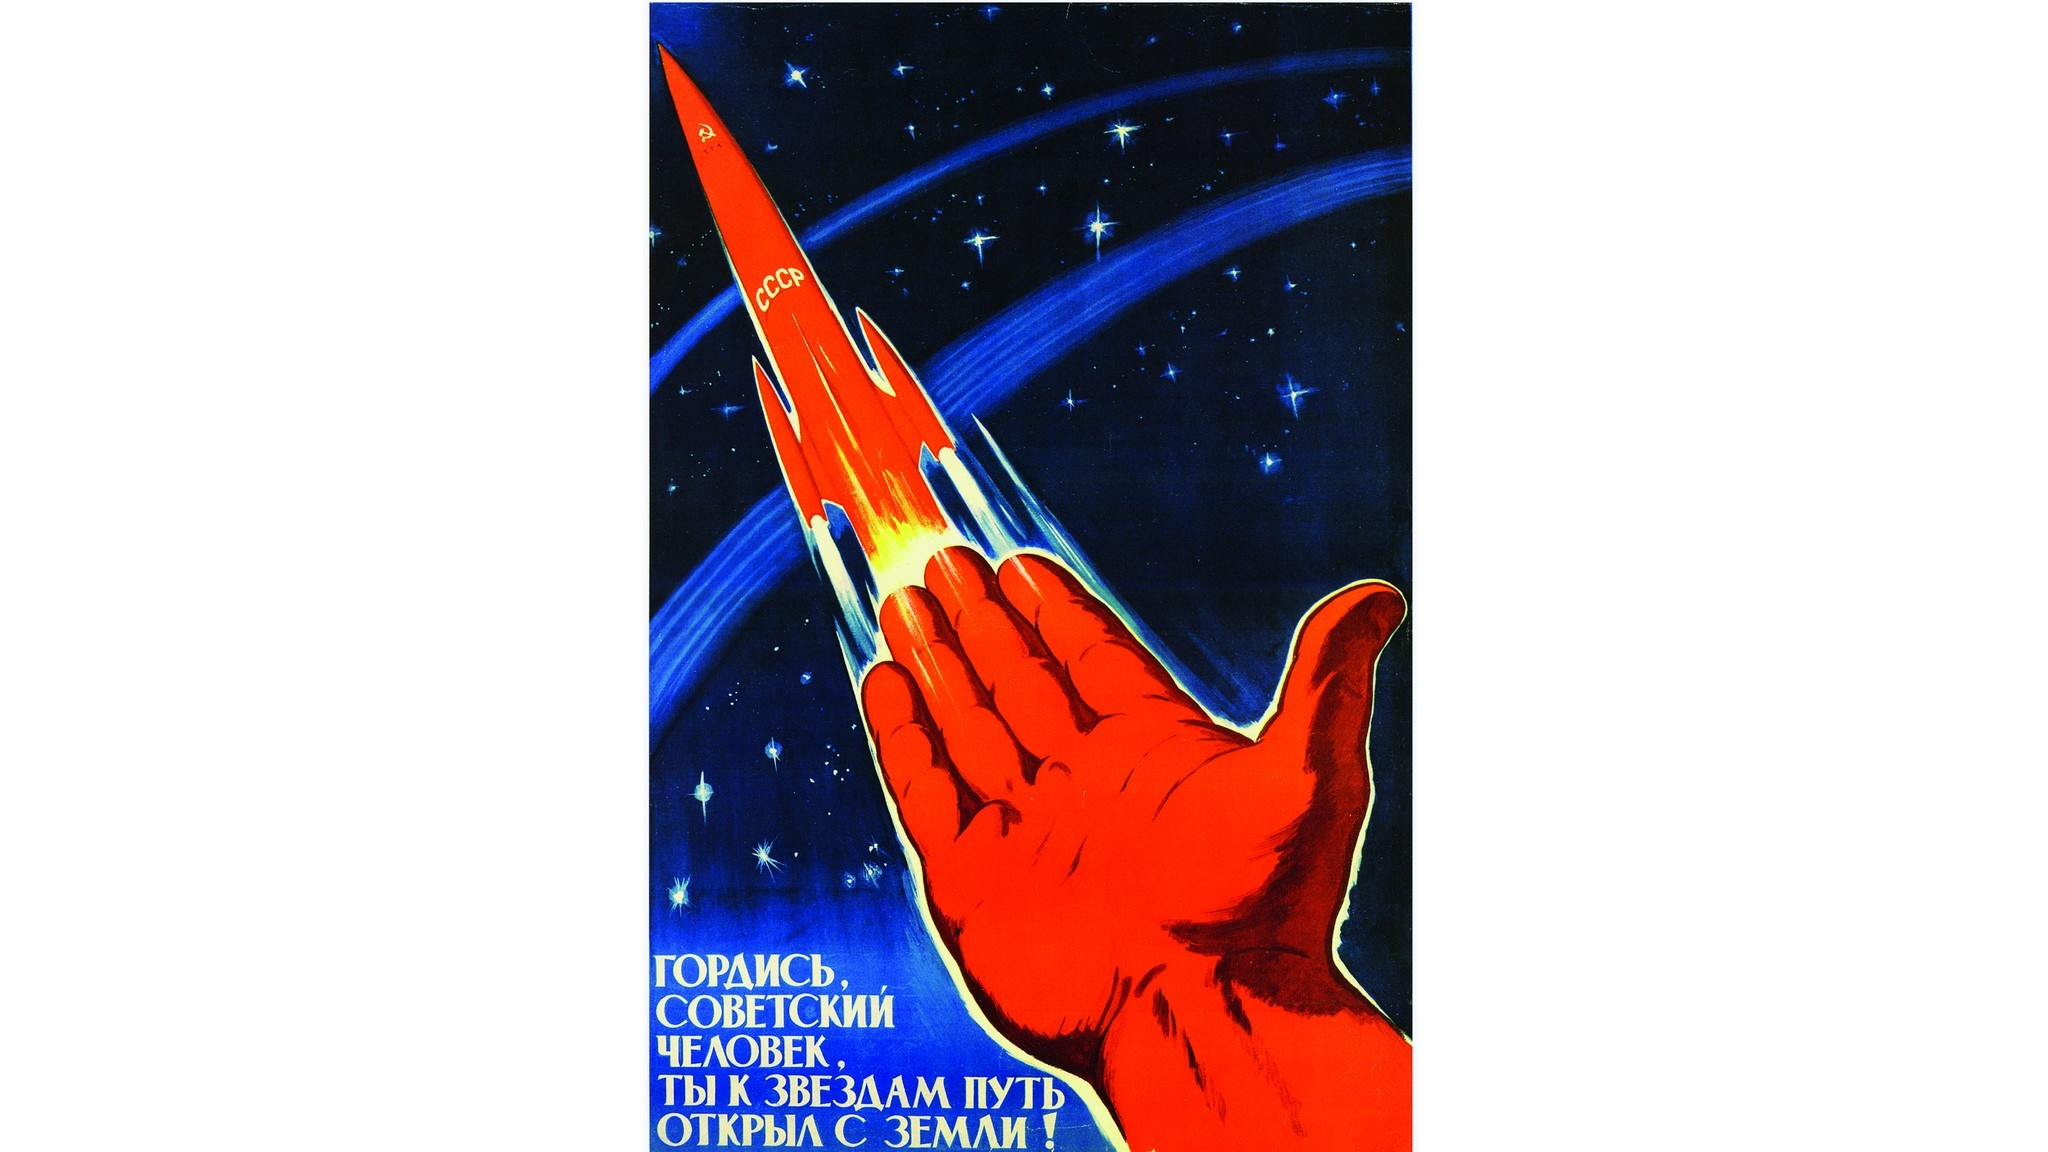 Soviet Space Programme Poster, 1963, Unknown, printed paper, 86.5 × 56 cm / 34 × 22 in, Private coll